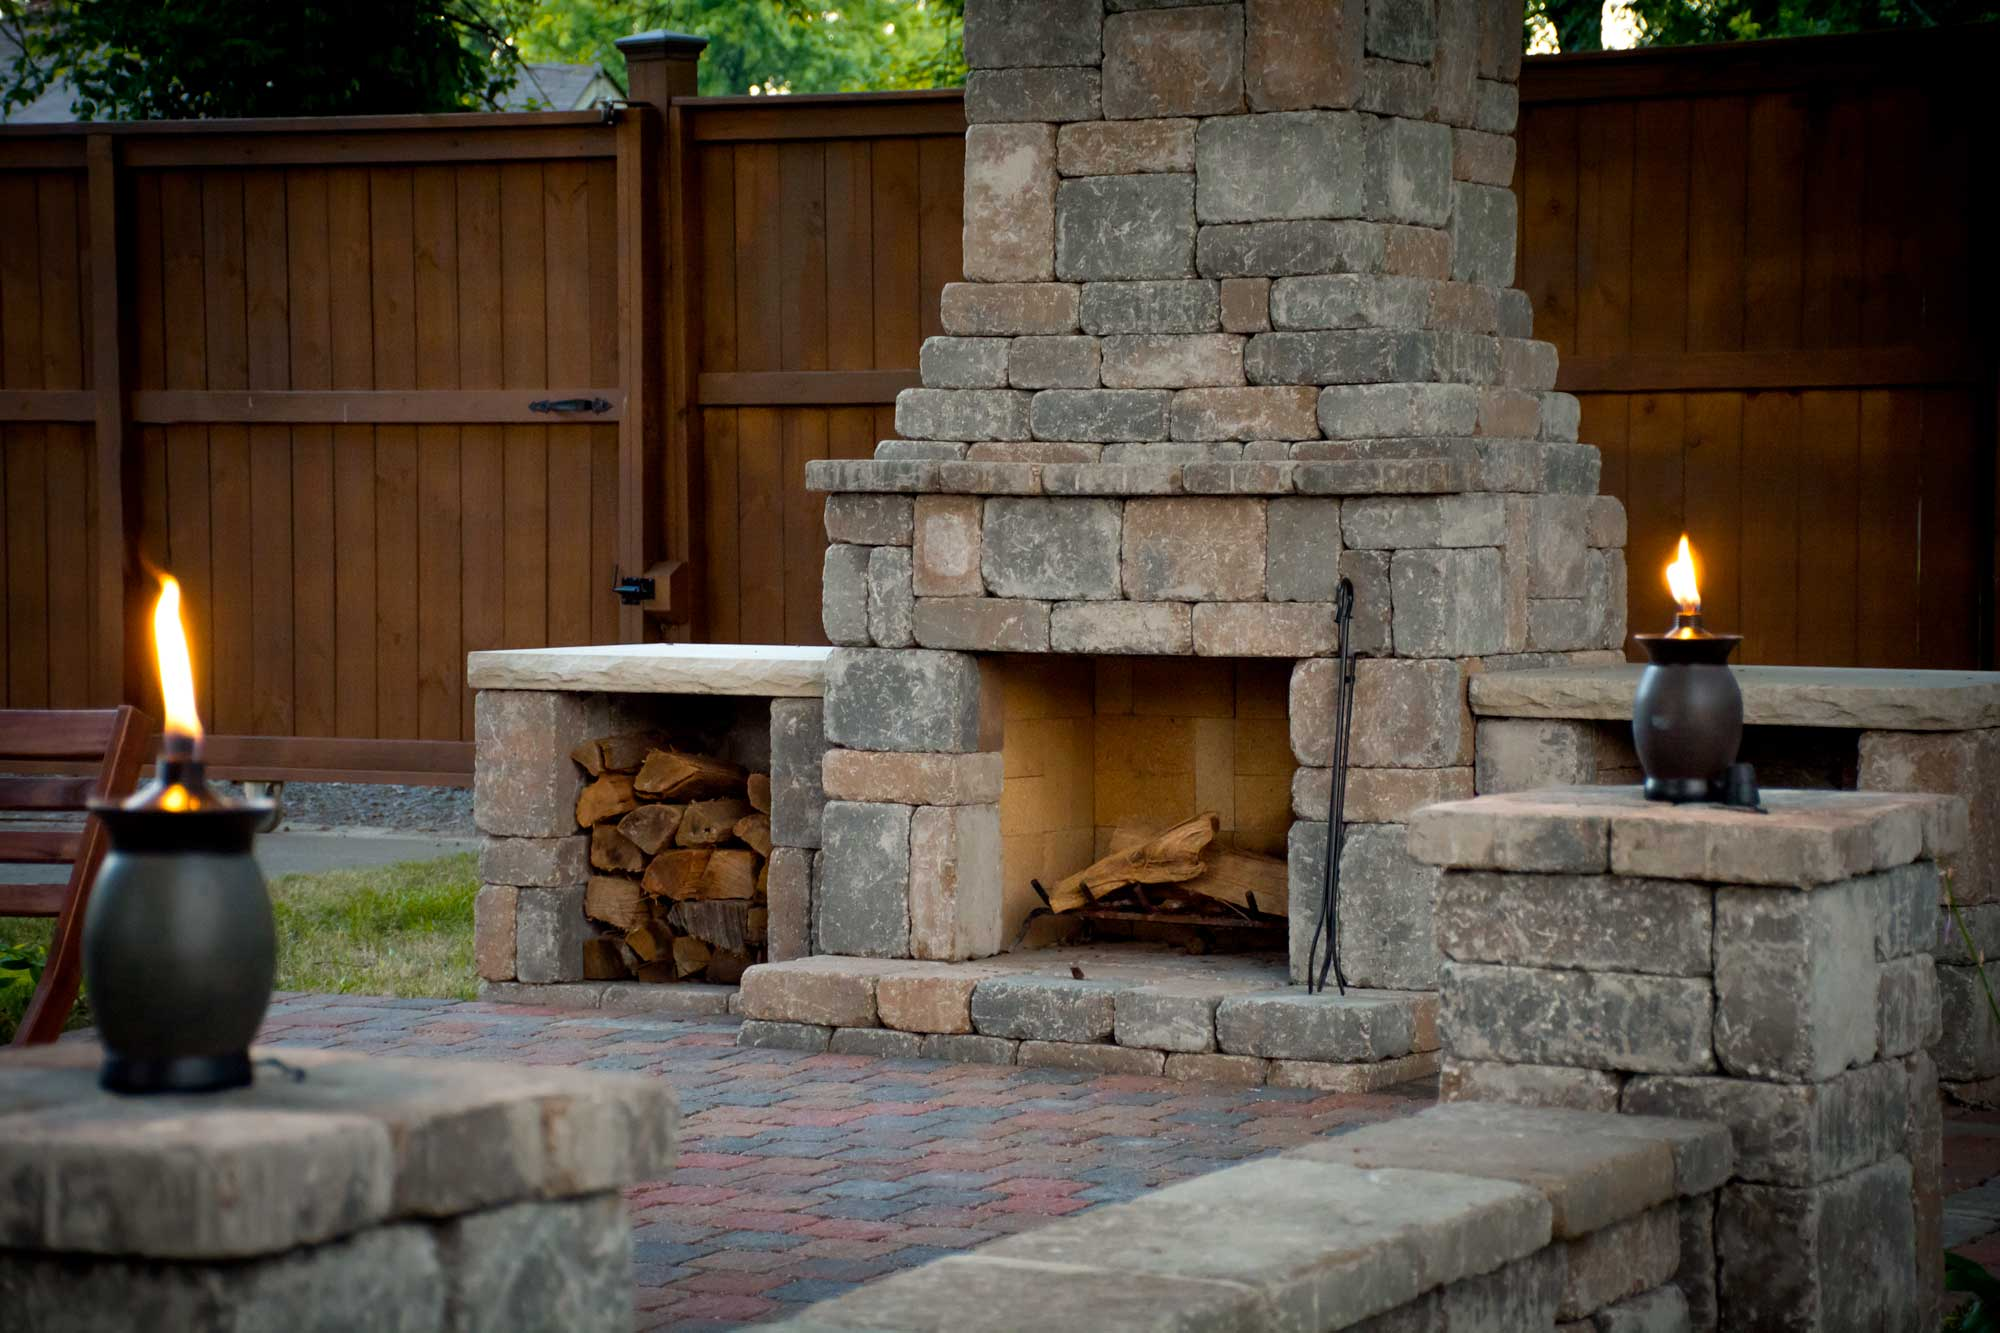 Make Your Own Outdoor Fireplace Diy Outdoor Fremont Fireplace Kit Makes Hardscaping Simple